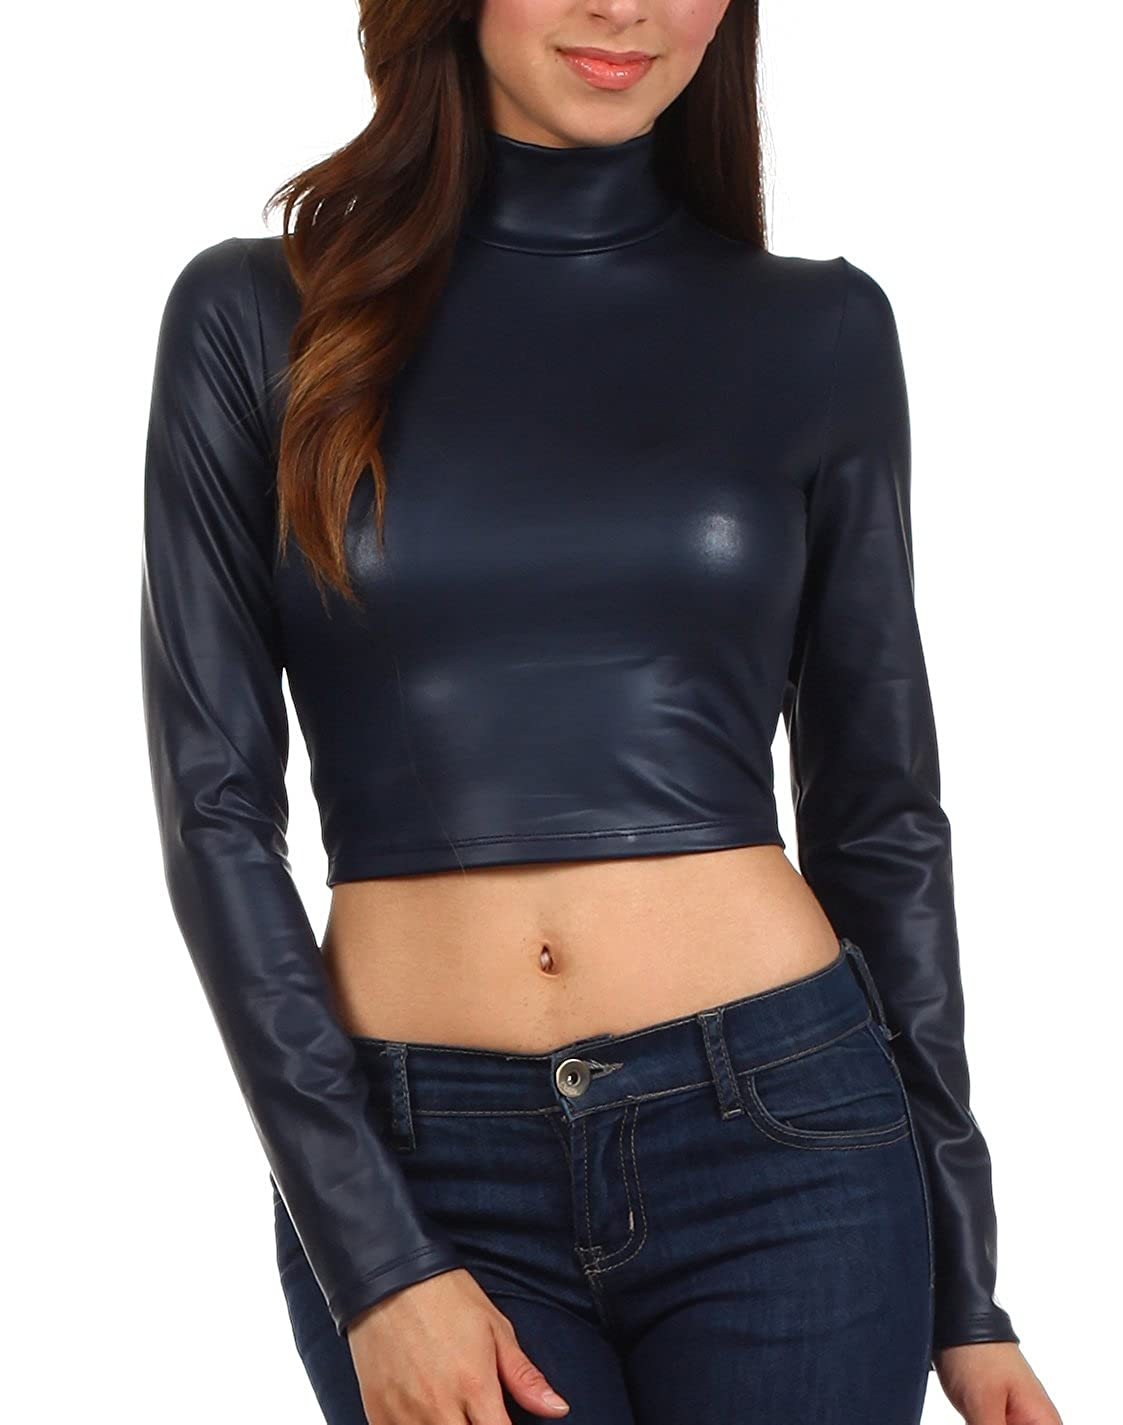 Sakkas Matte Liquid Schein-Hals Rollkragen lange Ärmel Crop Top - Made in USA